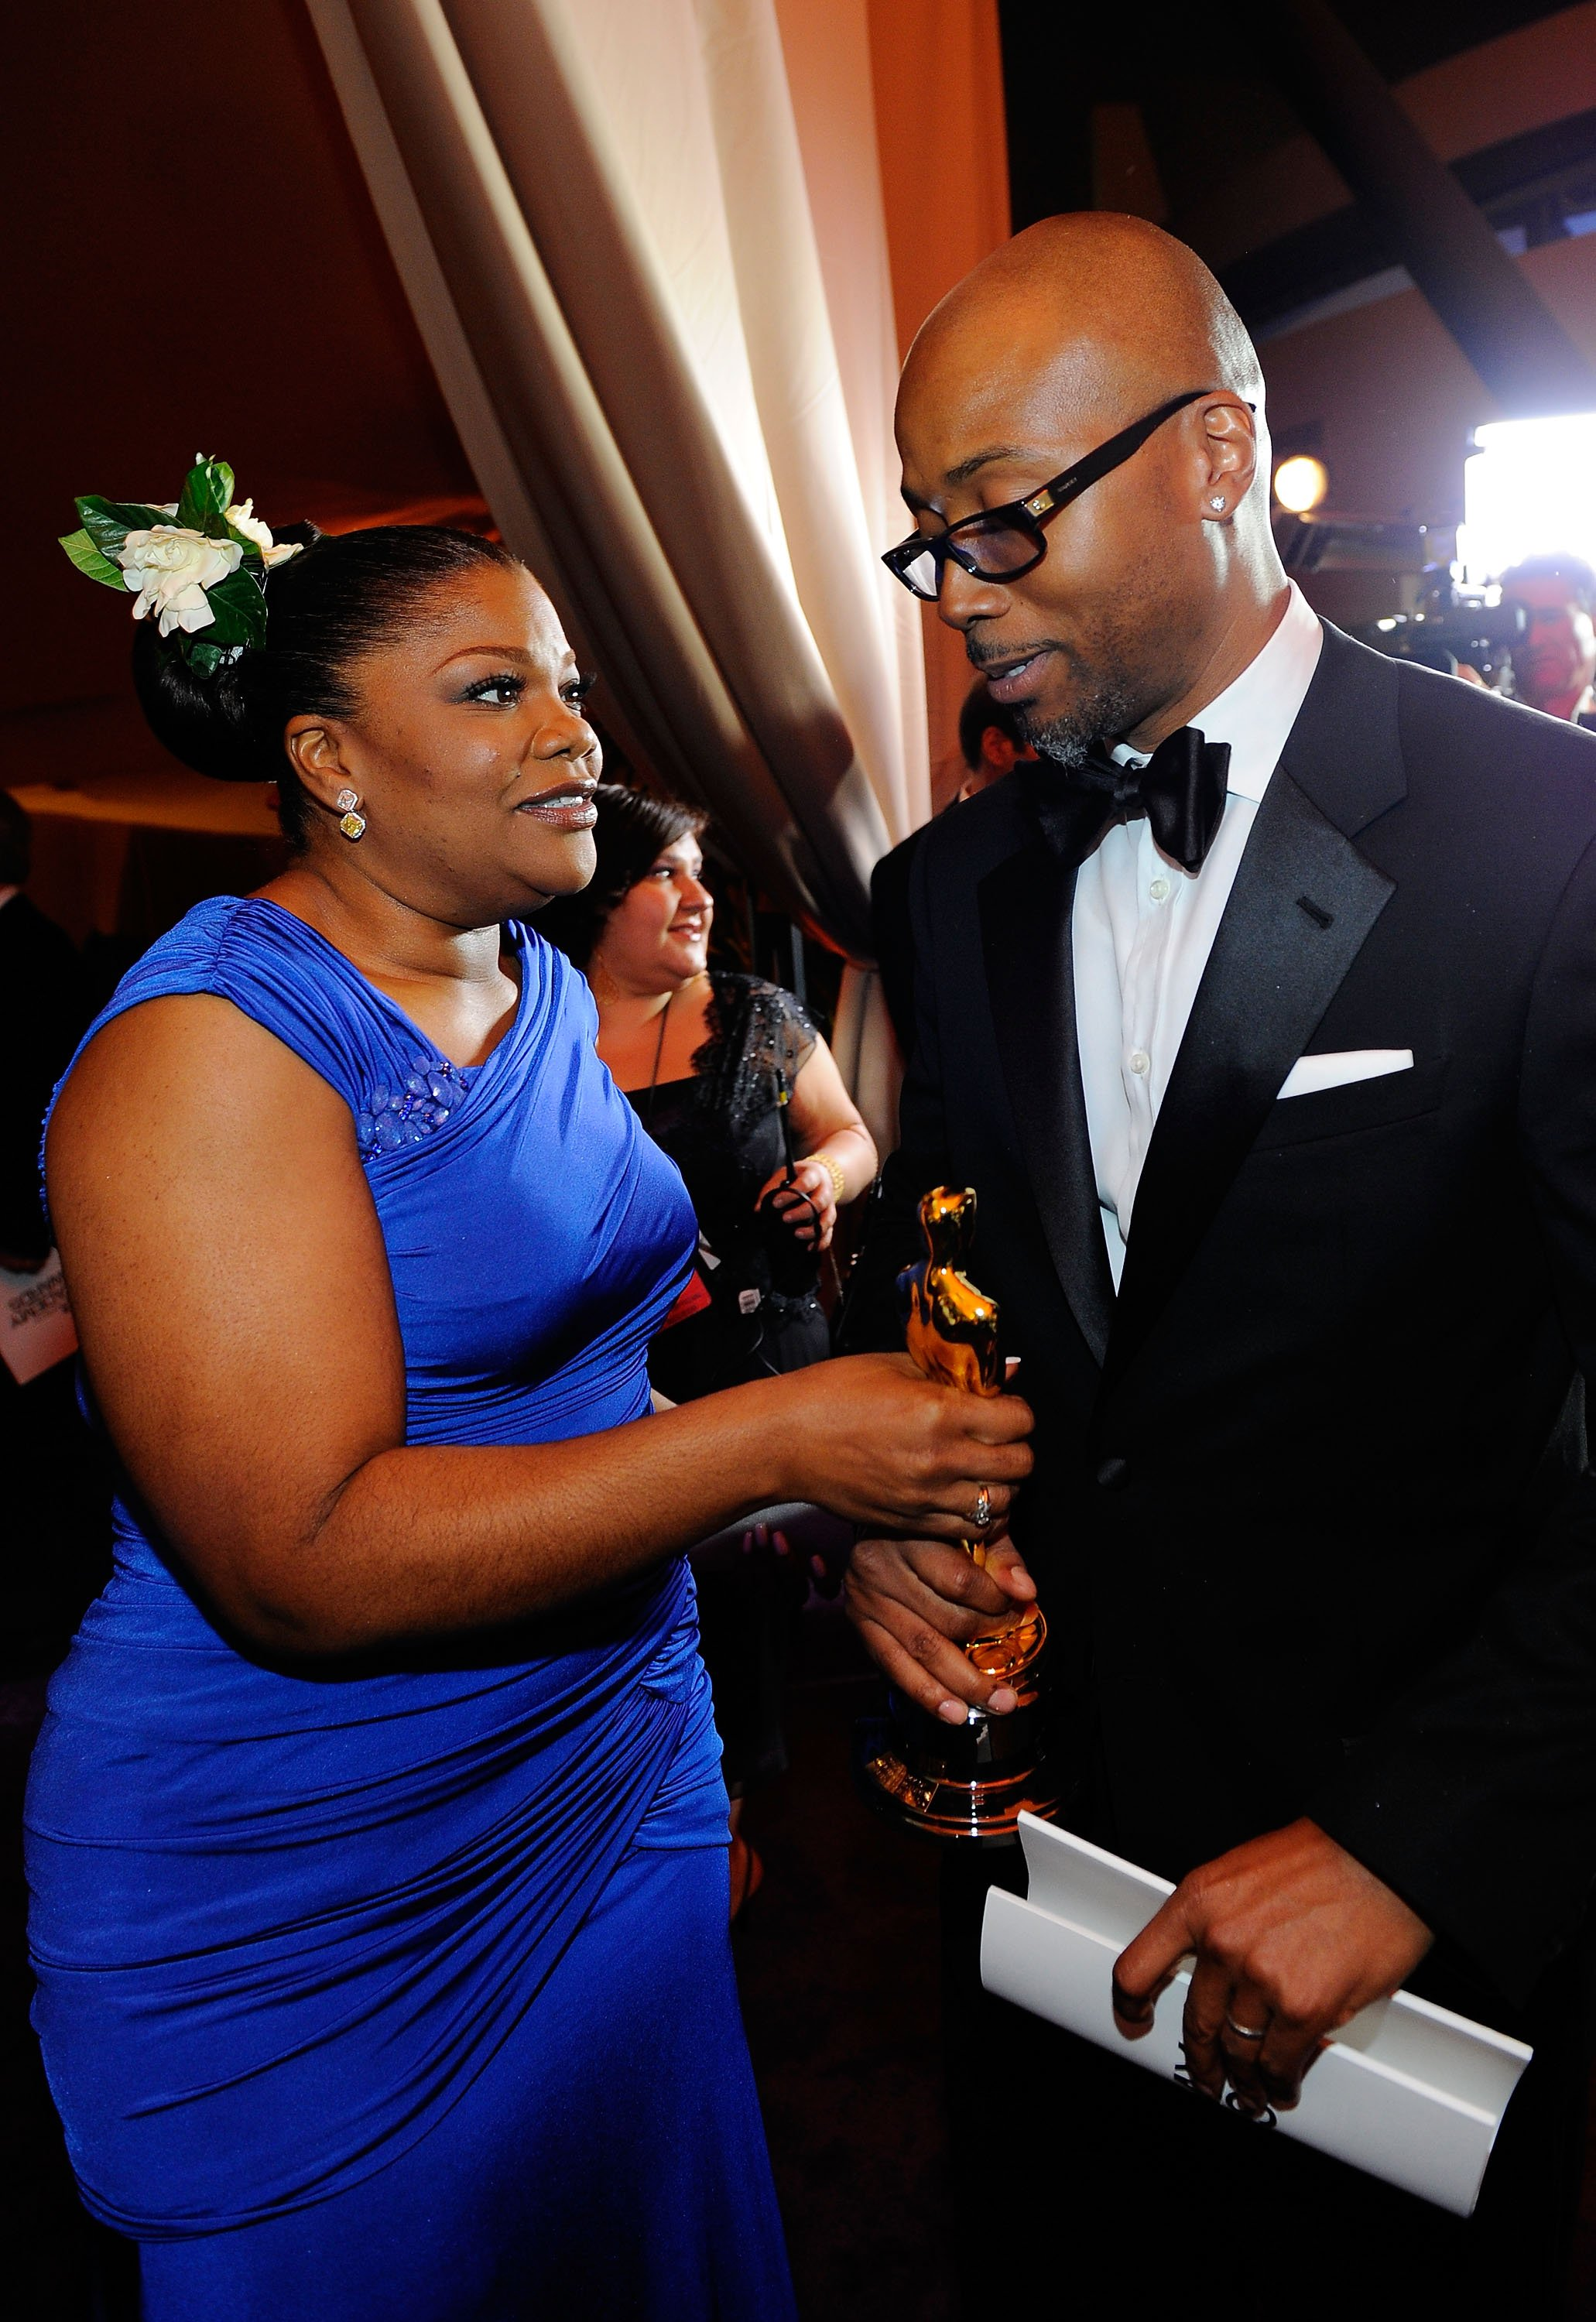 Mo'Nique and husband Sidney Hicks on March 7, 2010 in Hollywood, California | Source: Getty Images